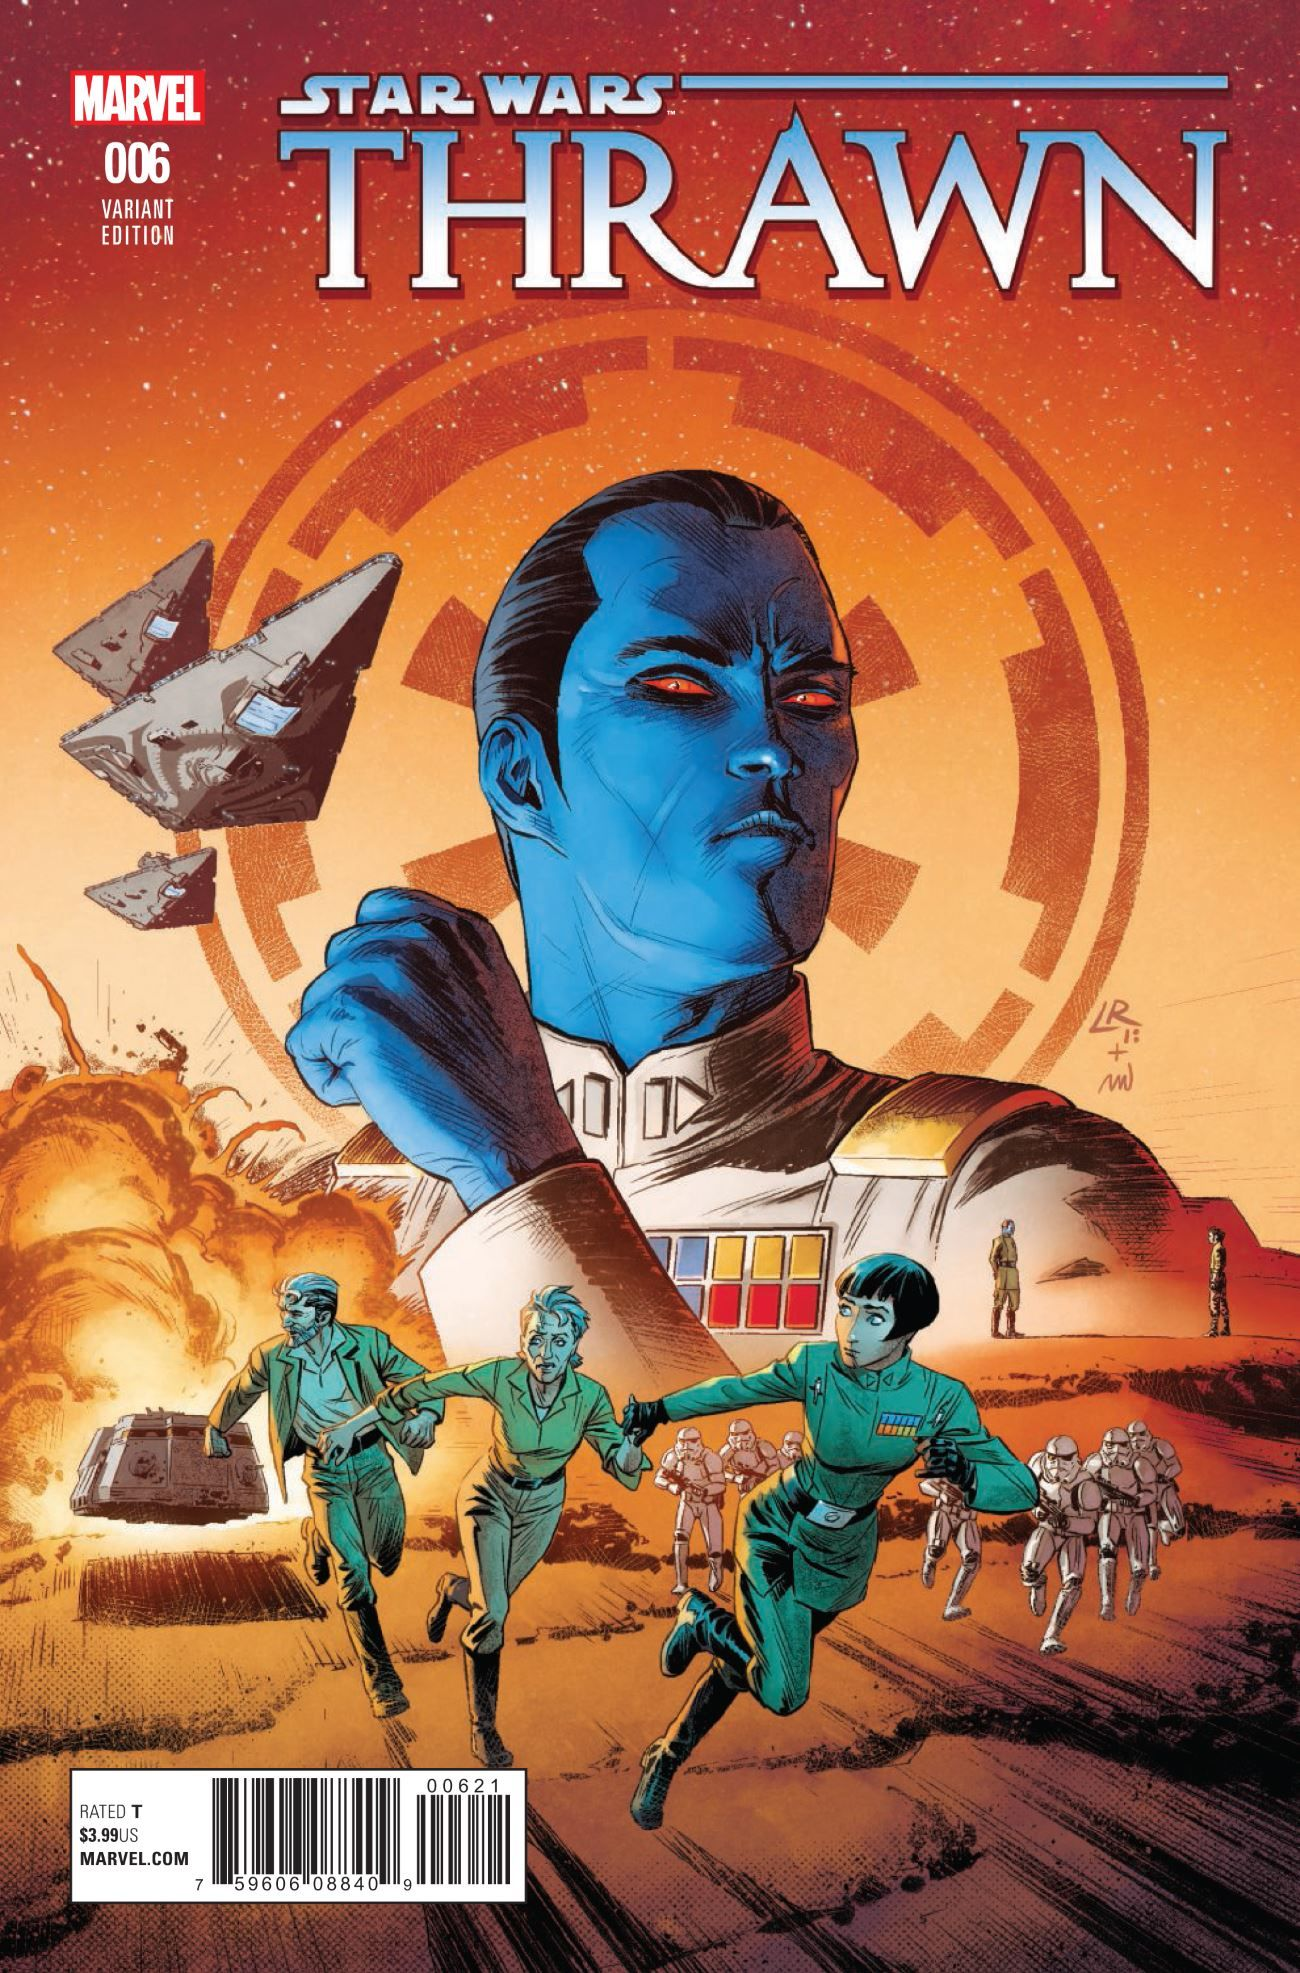 https://static0.srcdn.com/wordpress/wp-content/uploads/2018/07/Star-Wars-Thrawn-Comic-6-Variant.jpg?q=50&fit=crop&w=738